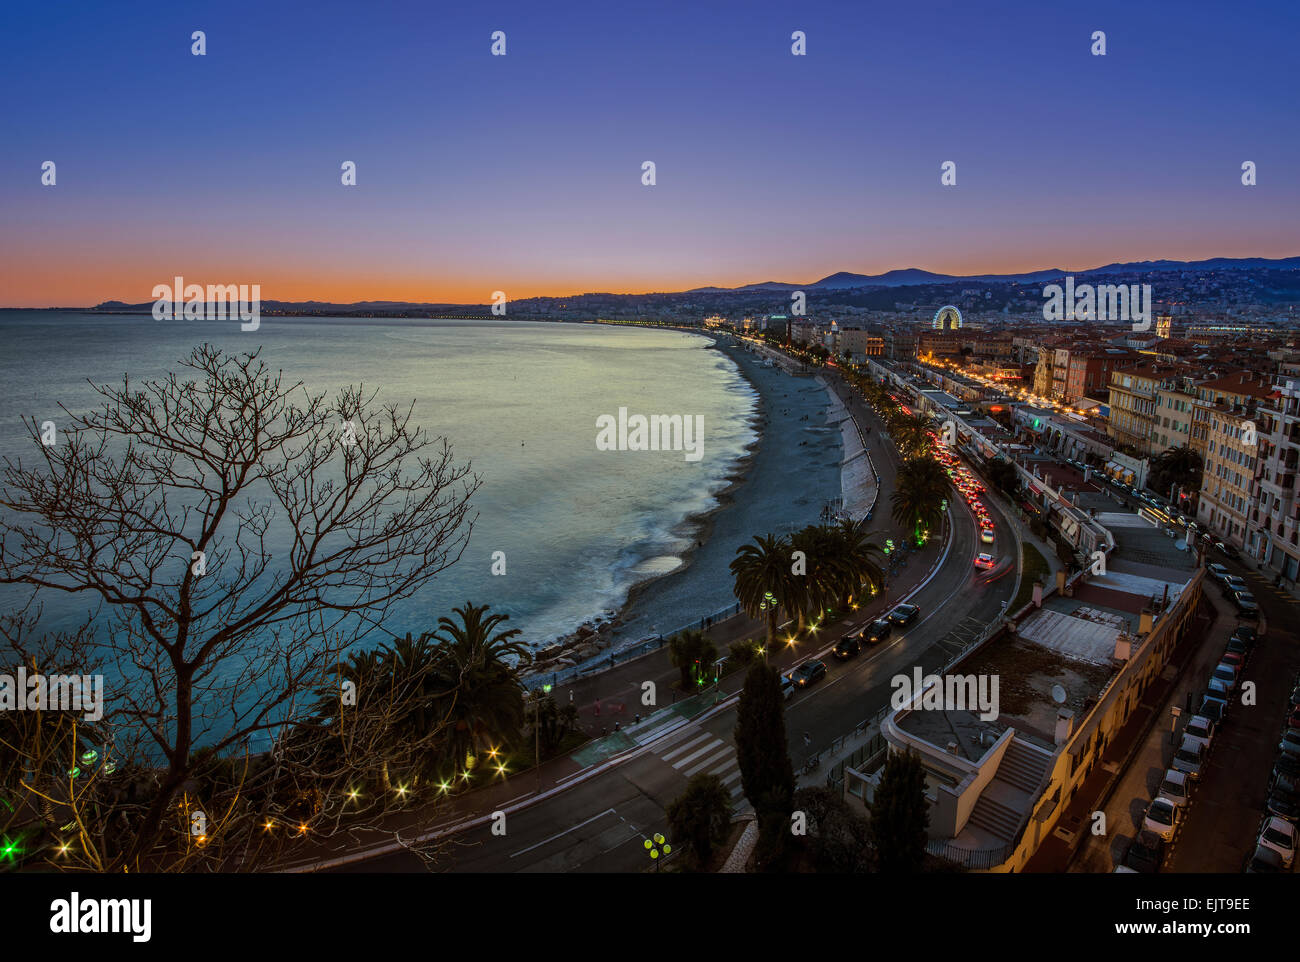 Sunset in Nice - Stock Image